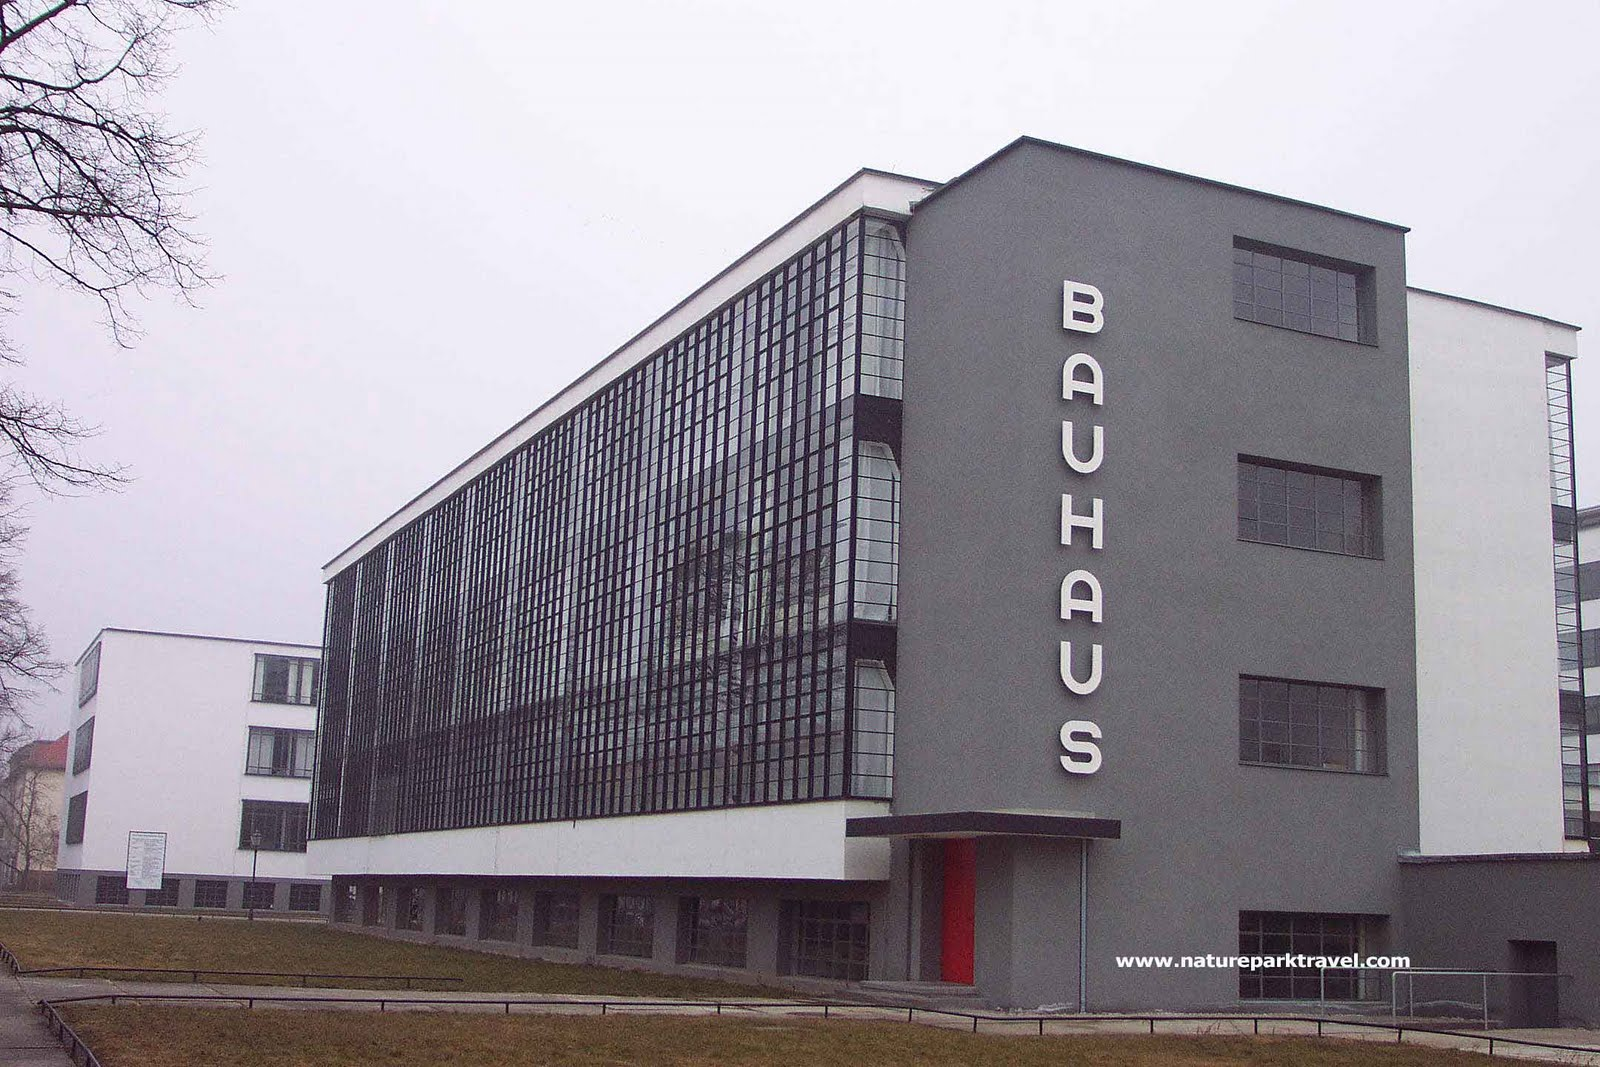 Bauhaus architecture: a history from 1919-1931